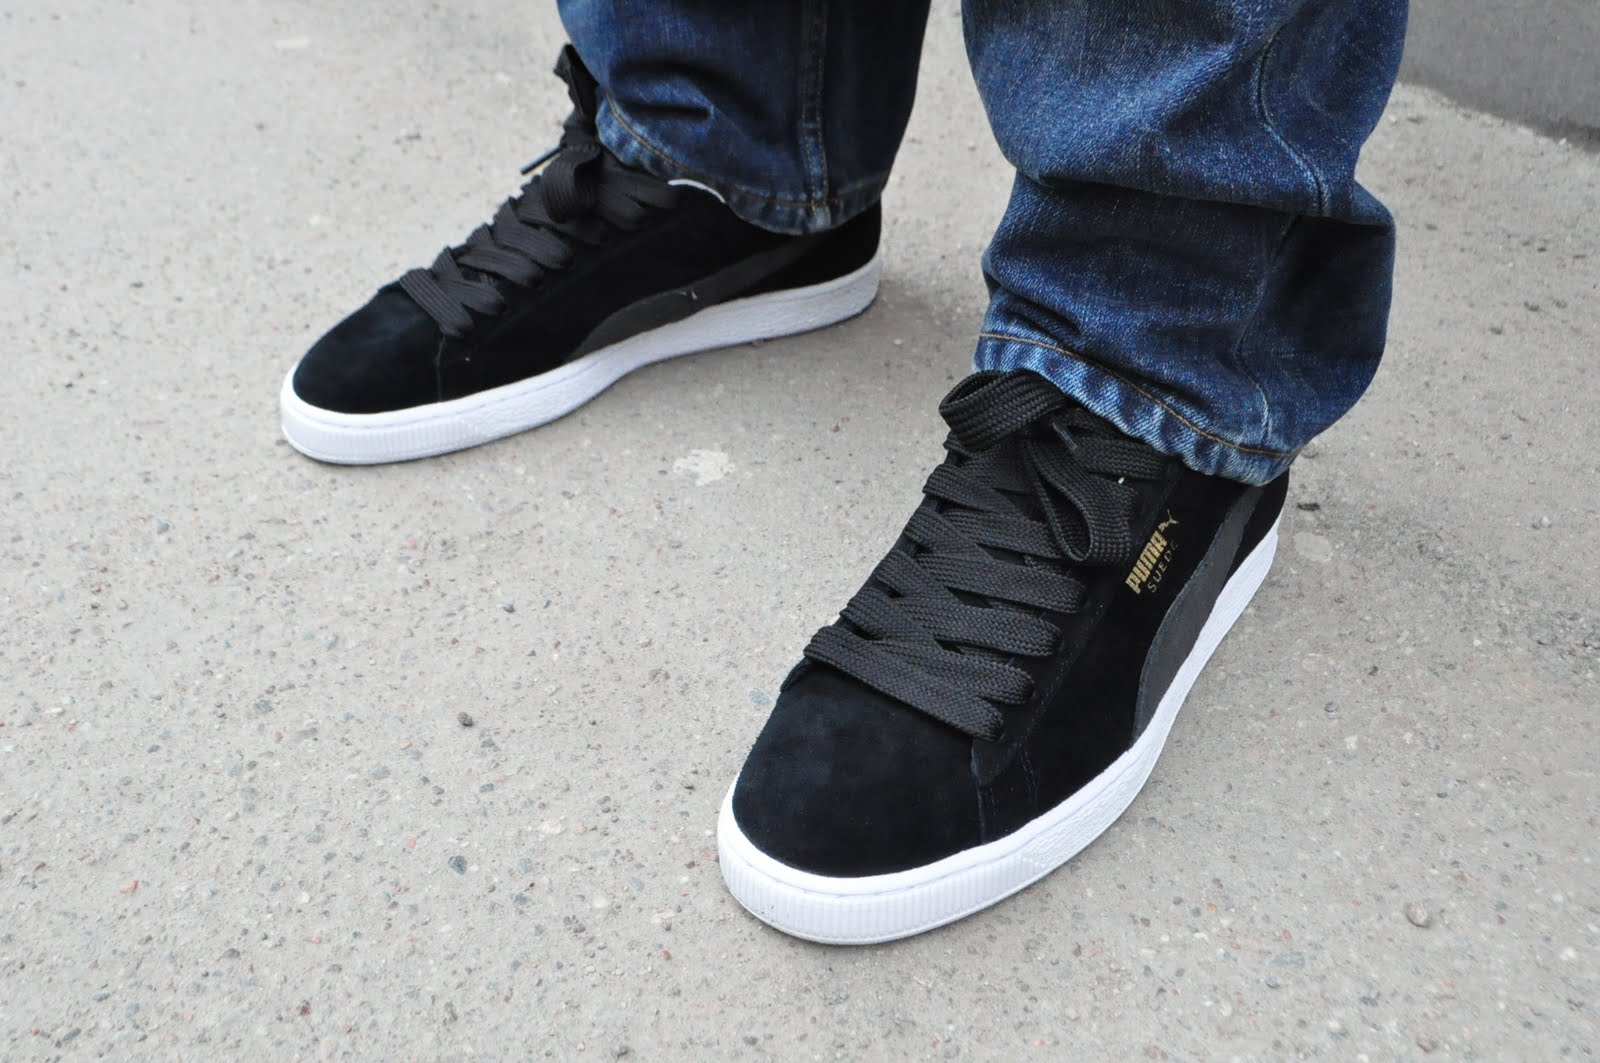 new style 2780d 6bc4d Puma Suede Classic On Feet wearpointwindfarm.co.uk